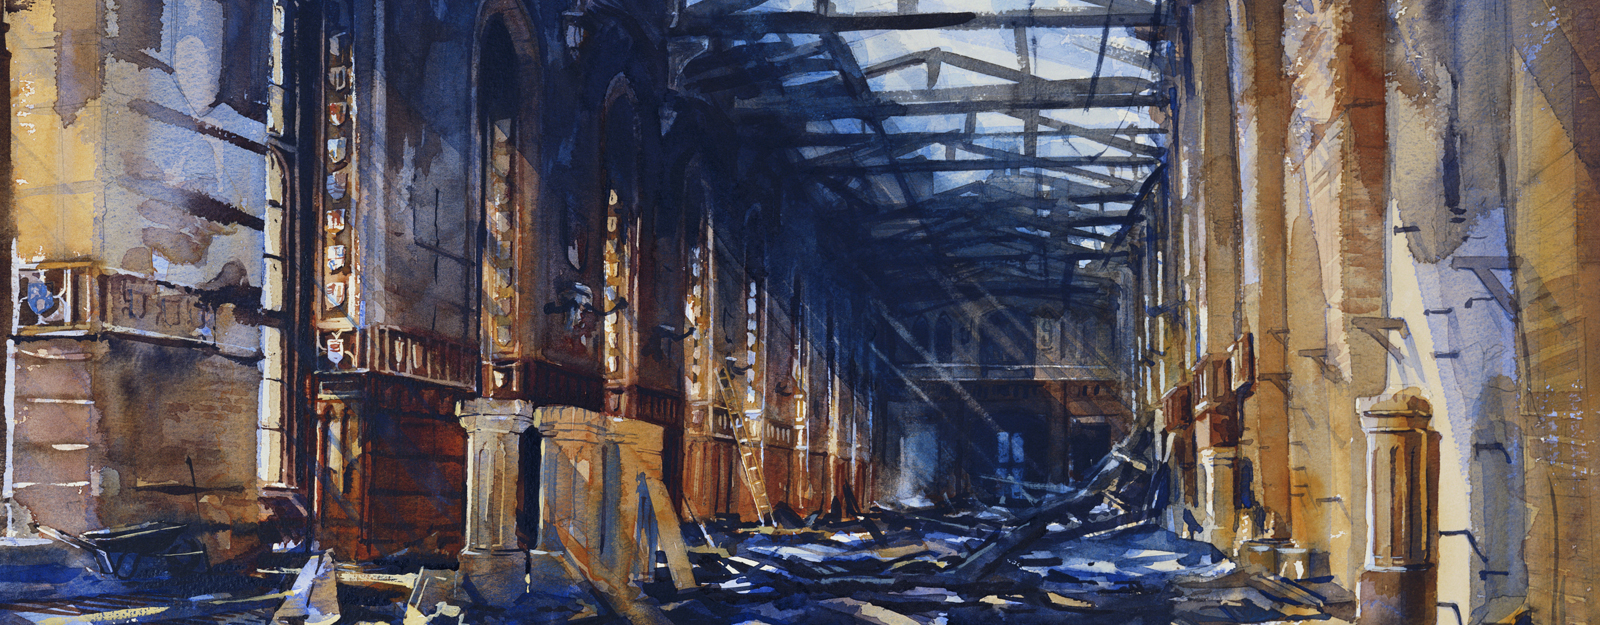 Watercolour painting of a detailed interior view of St George's Hall after the fire, showing the exposed ceiling and damaged fabric.